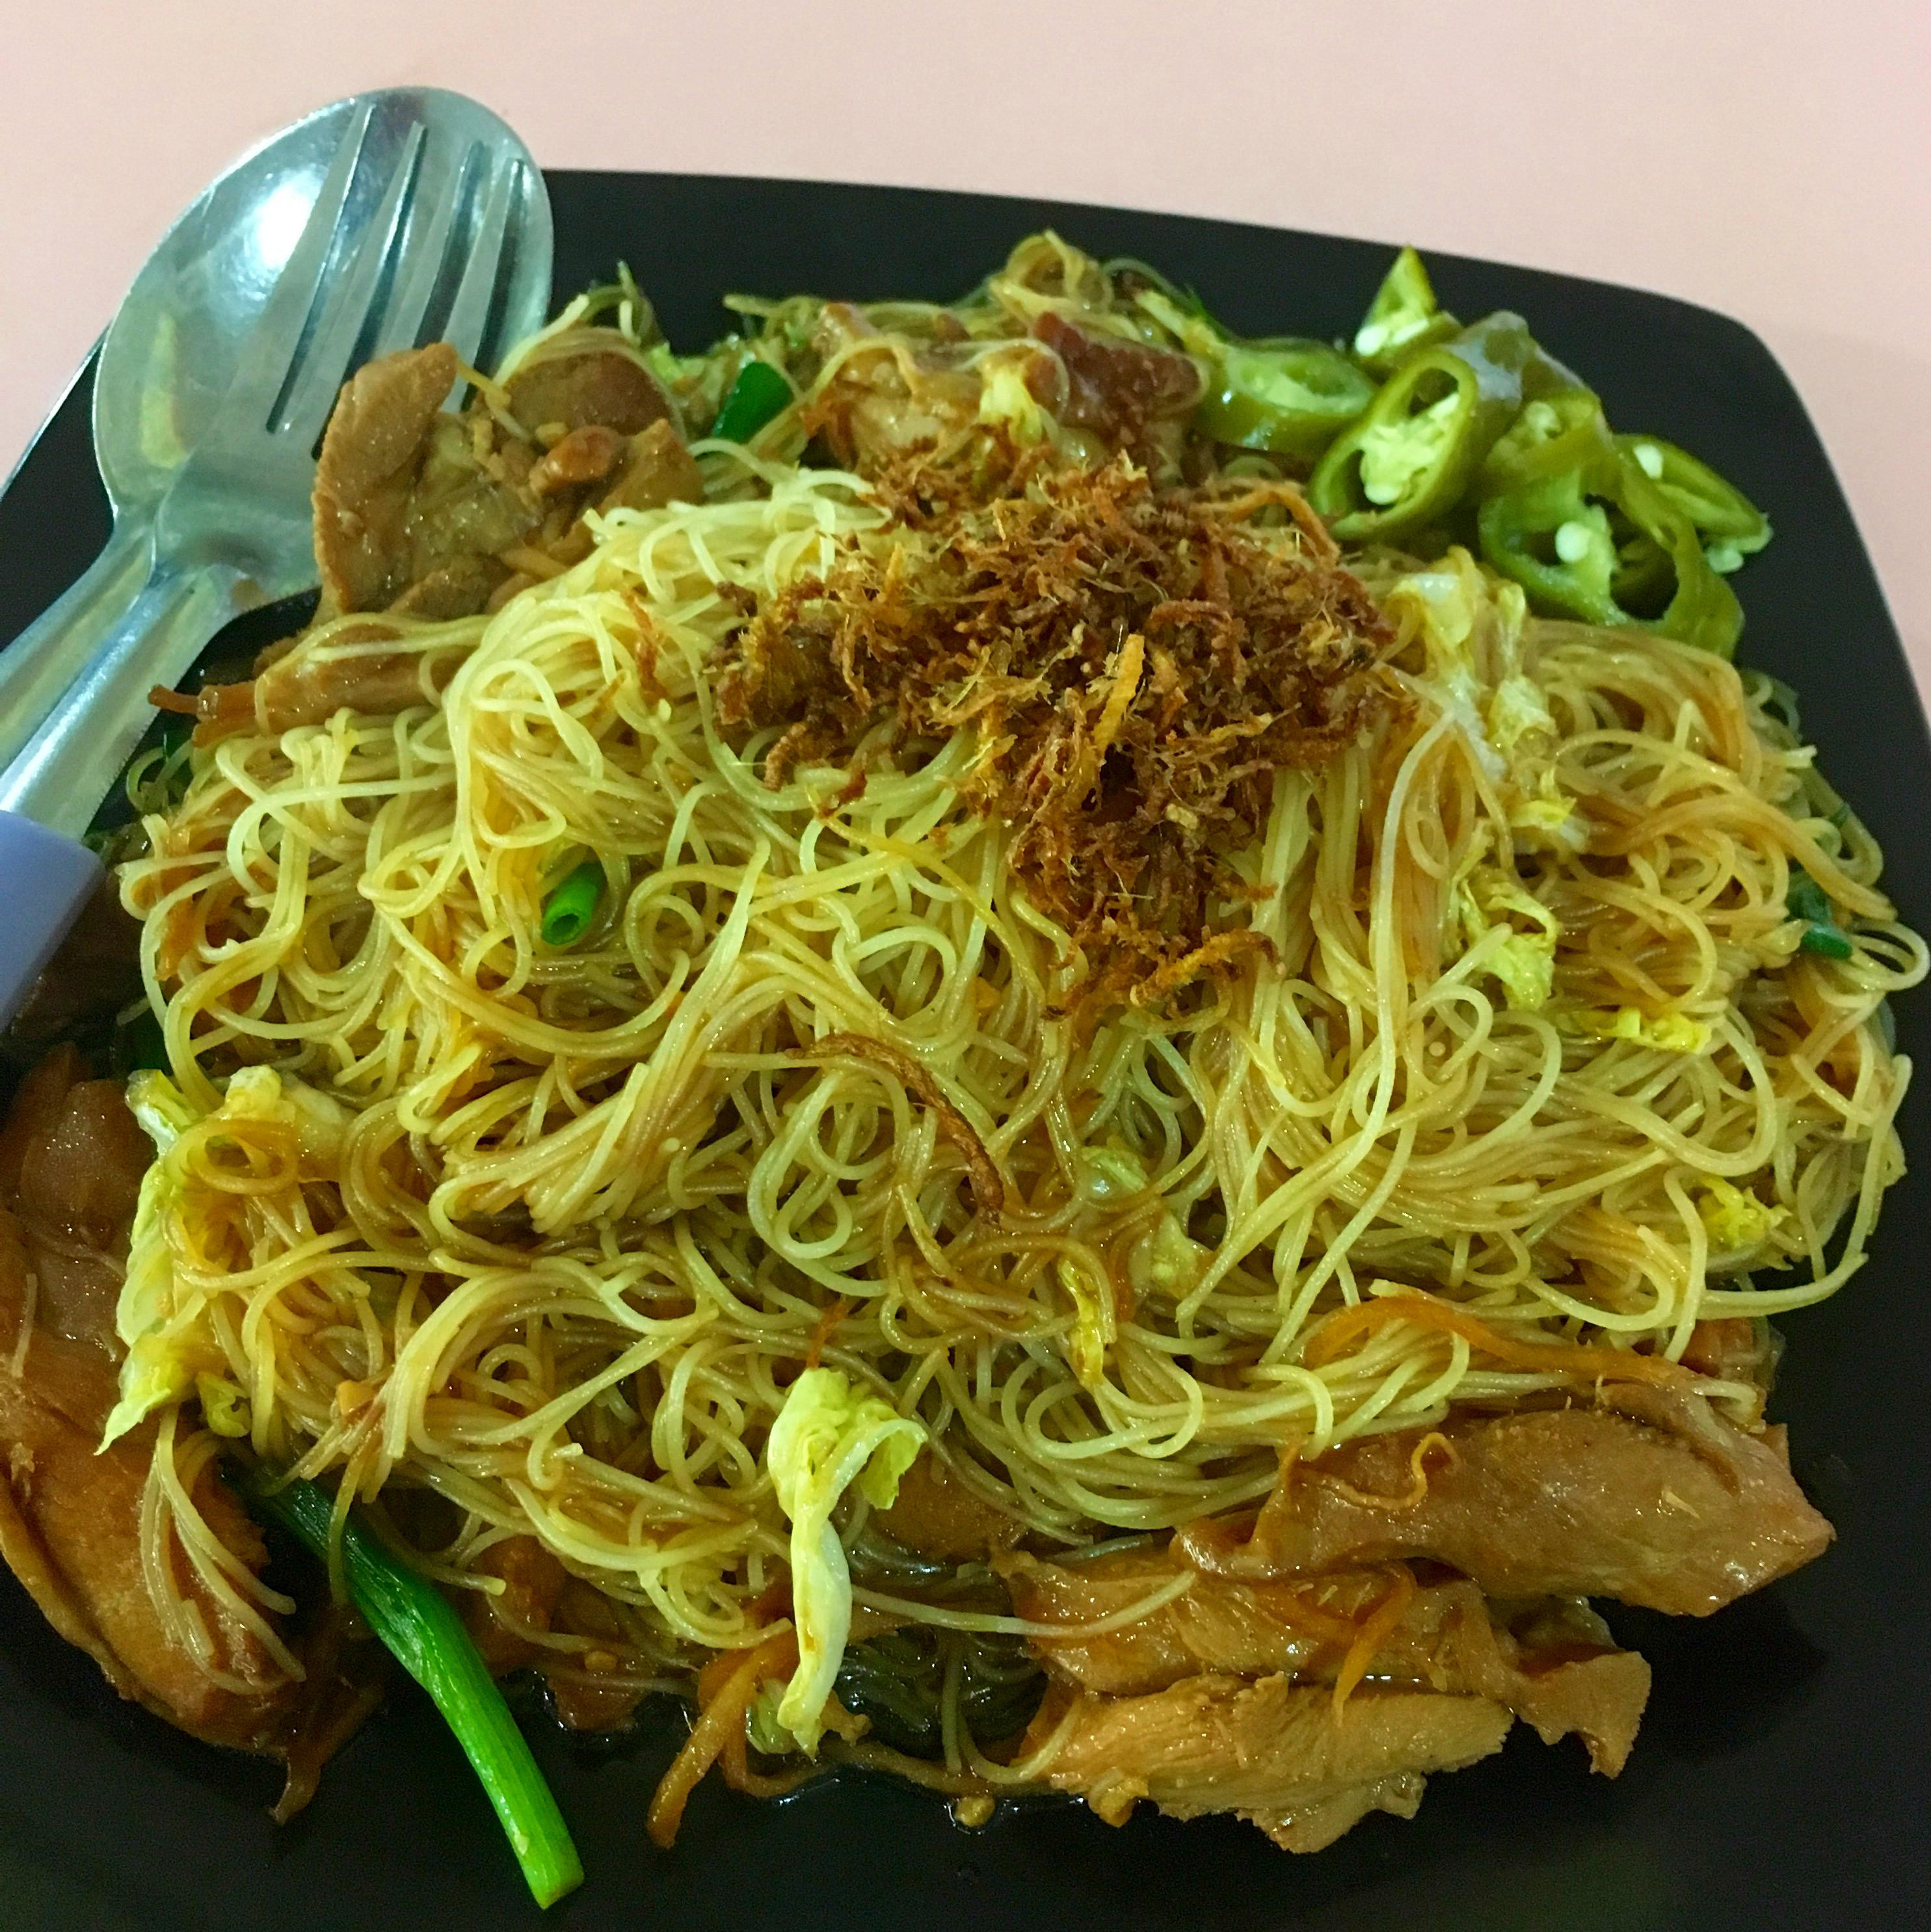 Vermicelli Rice Noodles  Wiki Rice vermicelli upcScavenger